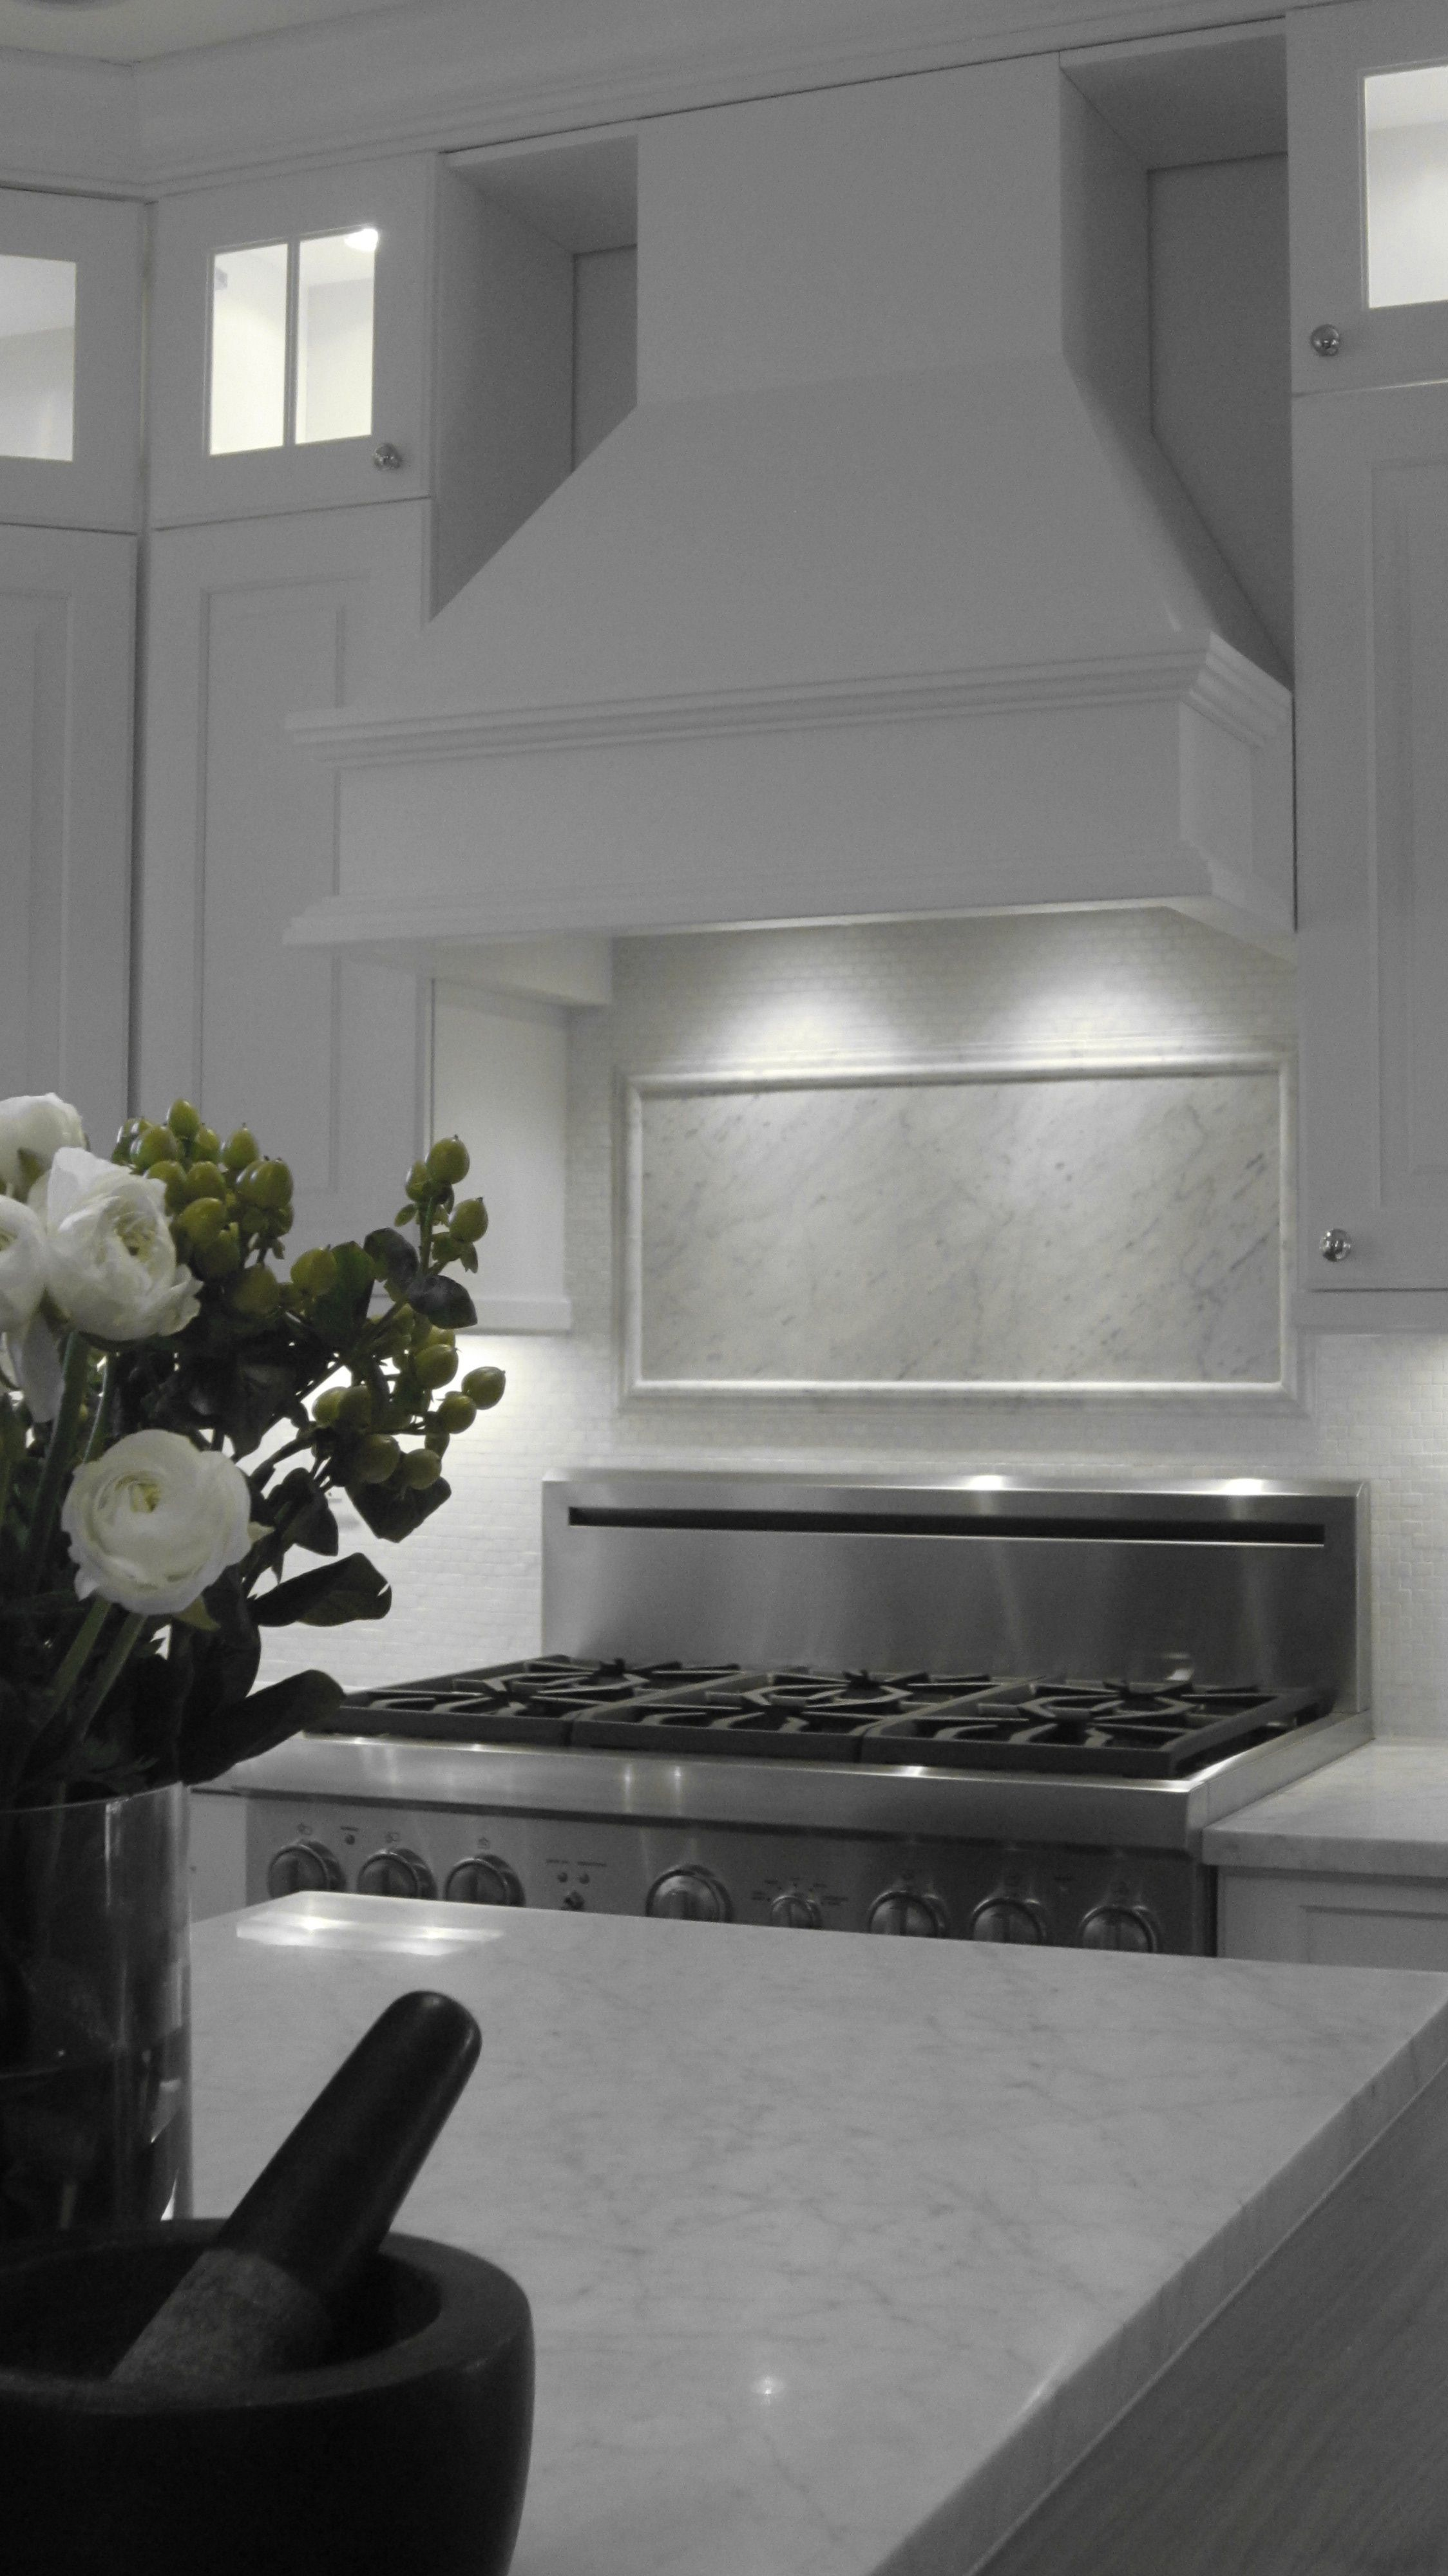 - Beacon St. Kitchen - Carrara Marble Countertops And Accent